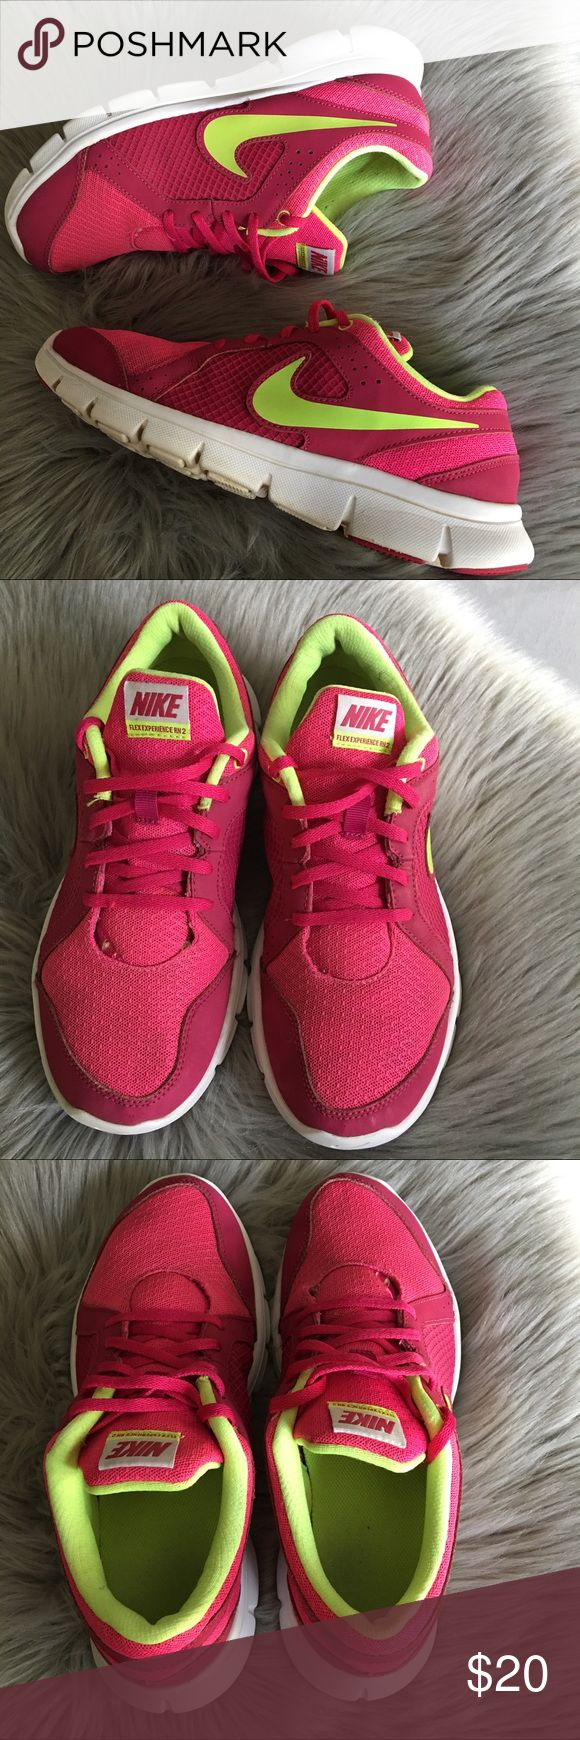 🎉Woman Nike Flex Experience RN 2🎉 In great condition with no flaws Nike Flex Experience shoes. Nike Shoes Athletic Shoes